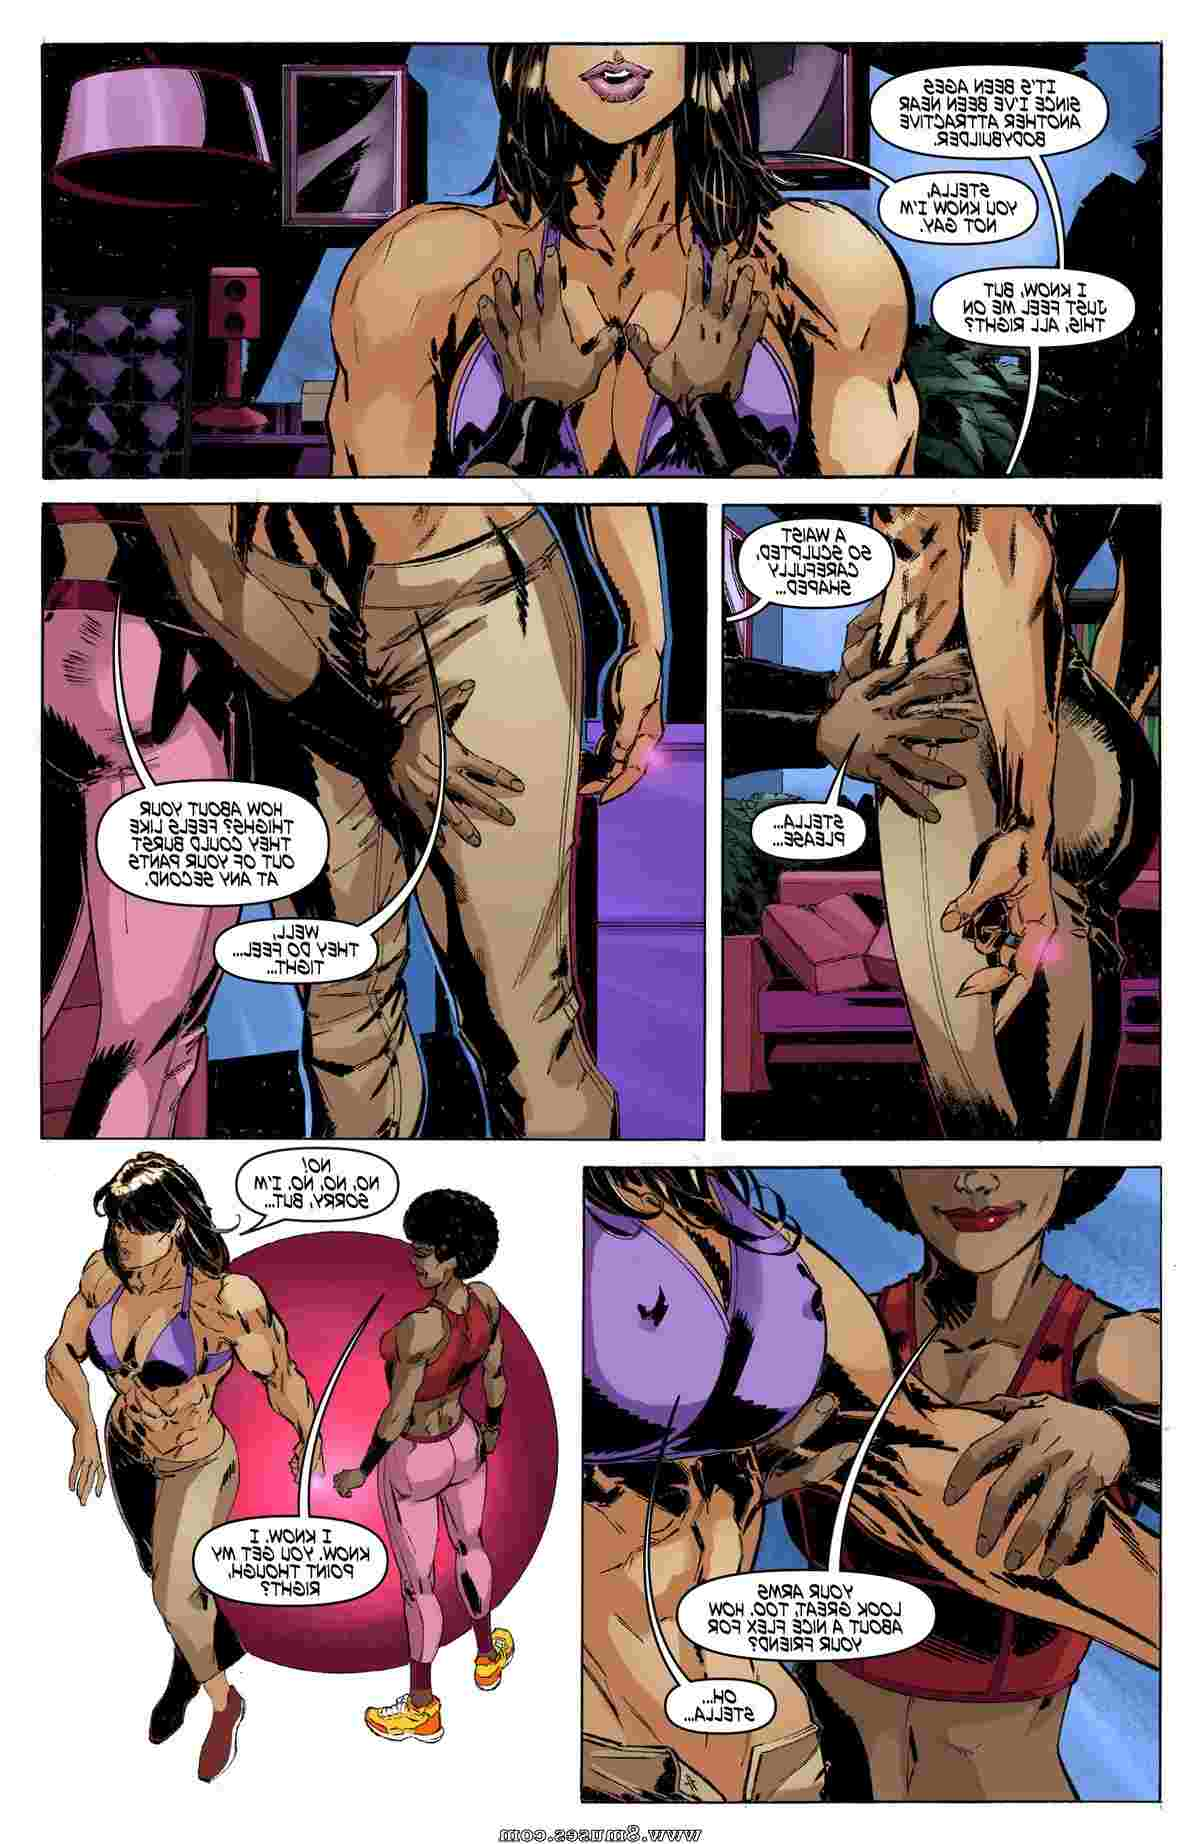 MuscleFan-Comics/Leveling-The-Field Leveling_The_Field__8muses_-_Sex_and_Porn_Comics_10.jpg